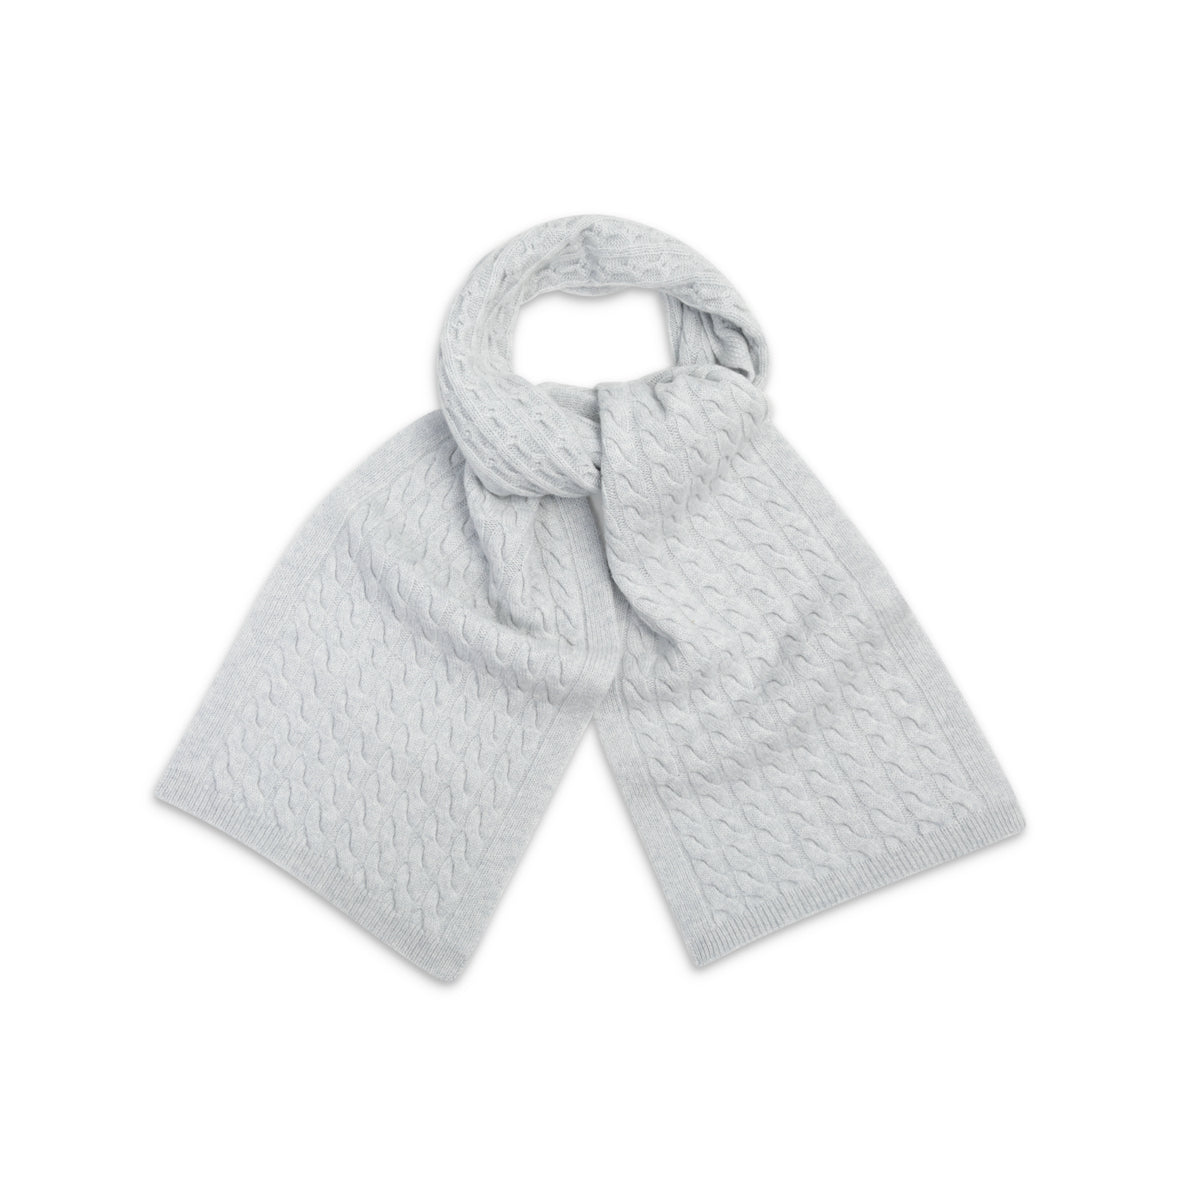 Organic White Cable Knit | Pure Cashmere Scarf | shop now at The Cashmere Choice London